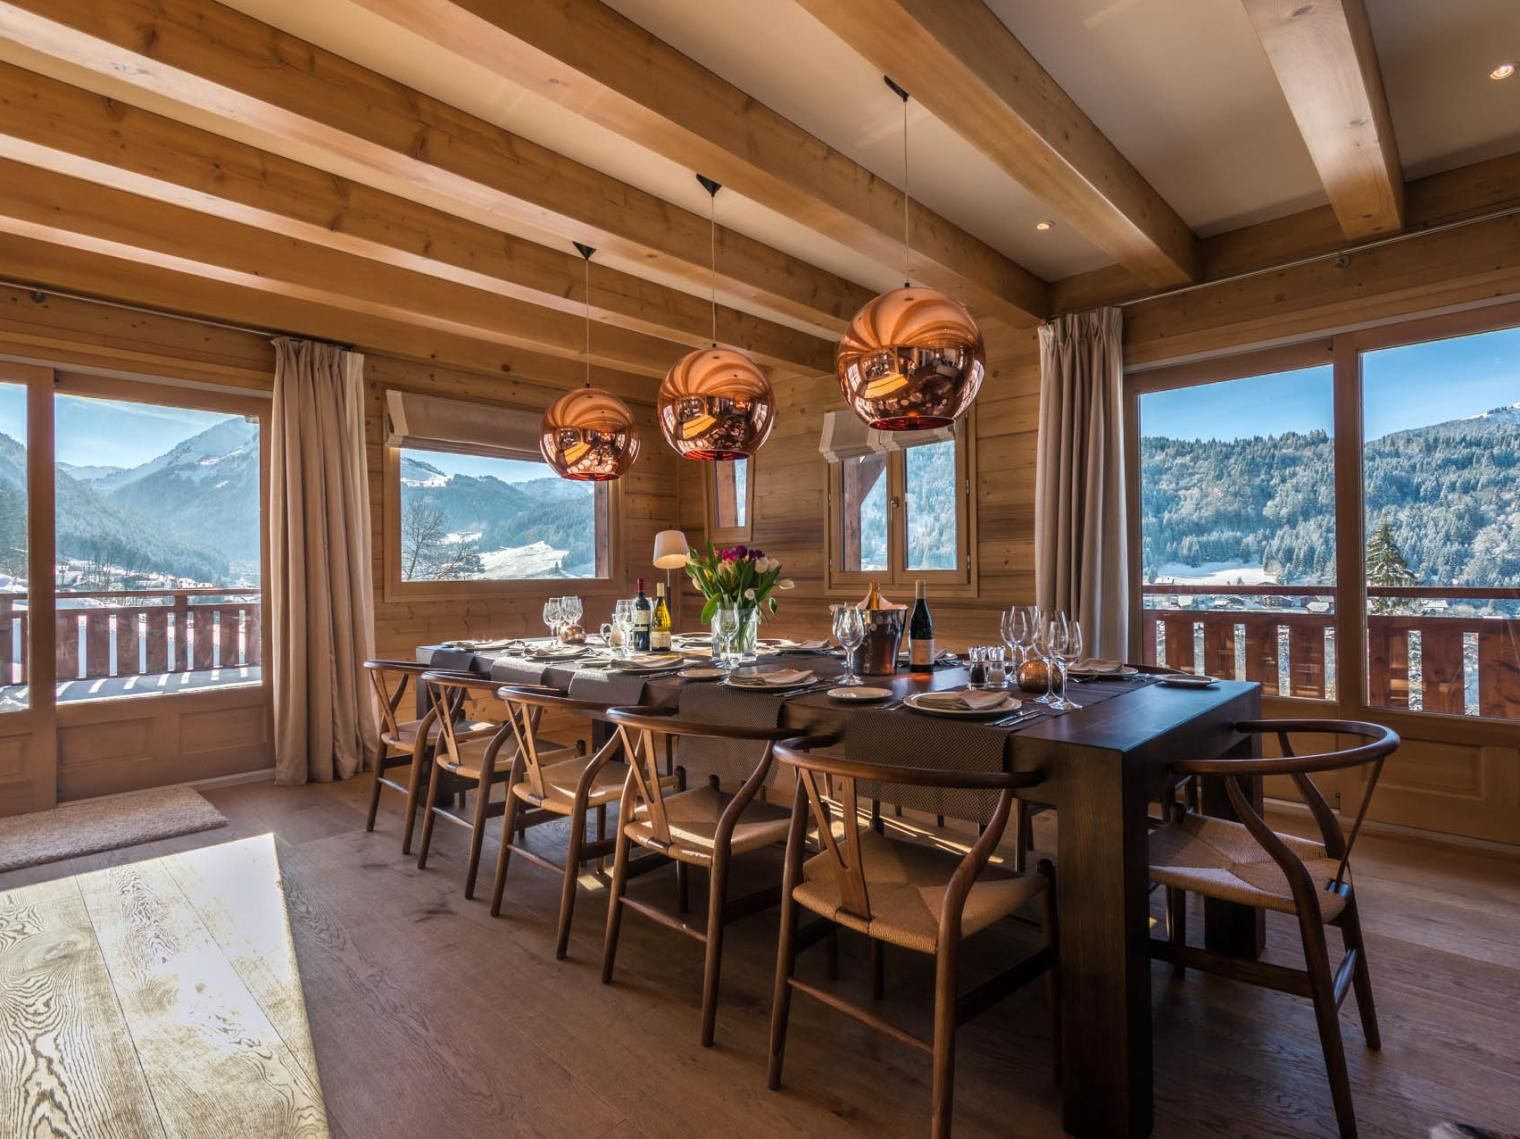 36 Of The World S Best Ski Chalets And Lodges To Visit Right Now In 2020 Chalet Beautiful Living Rooms European Home Decor